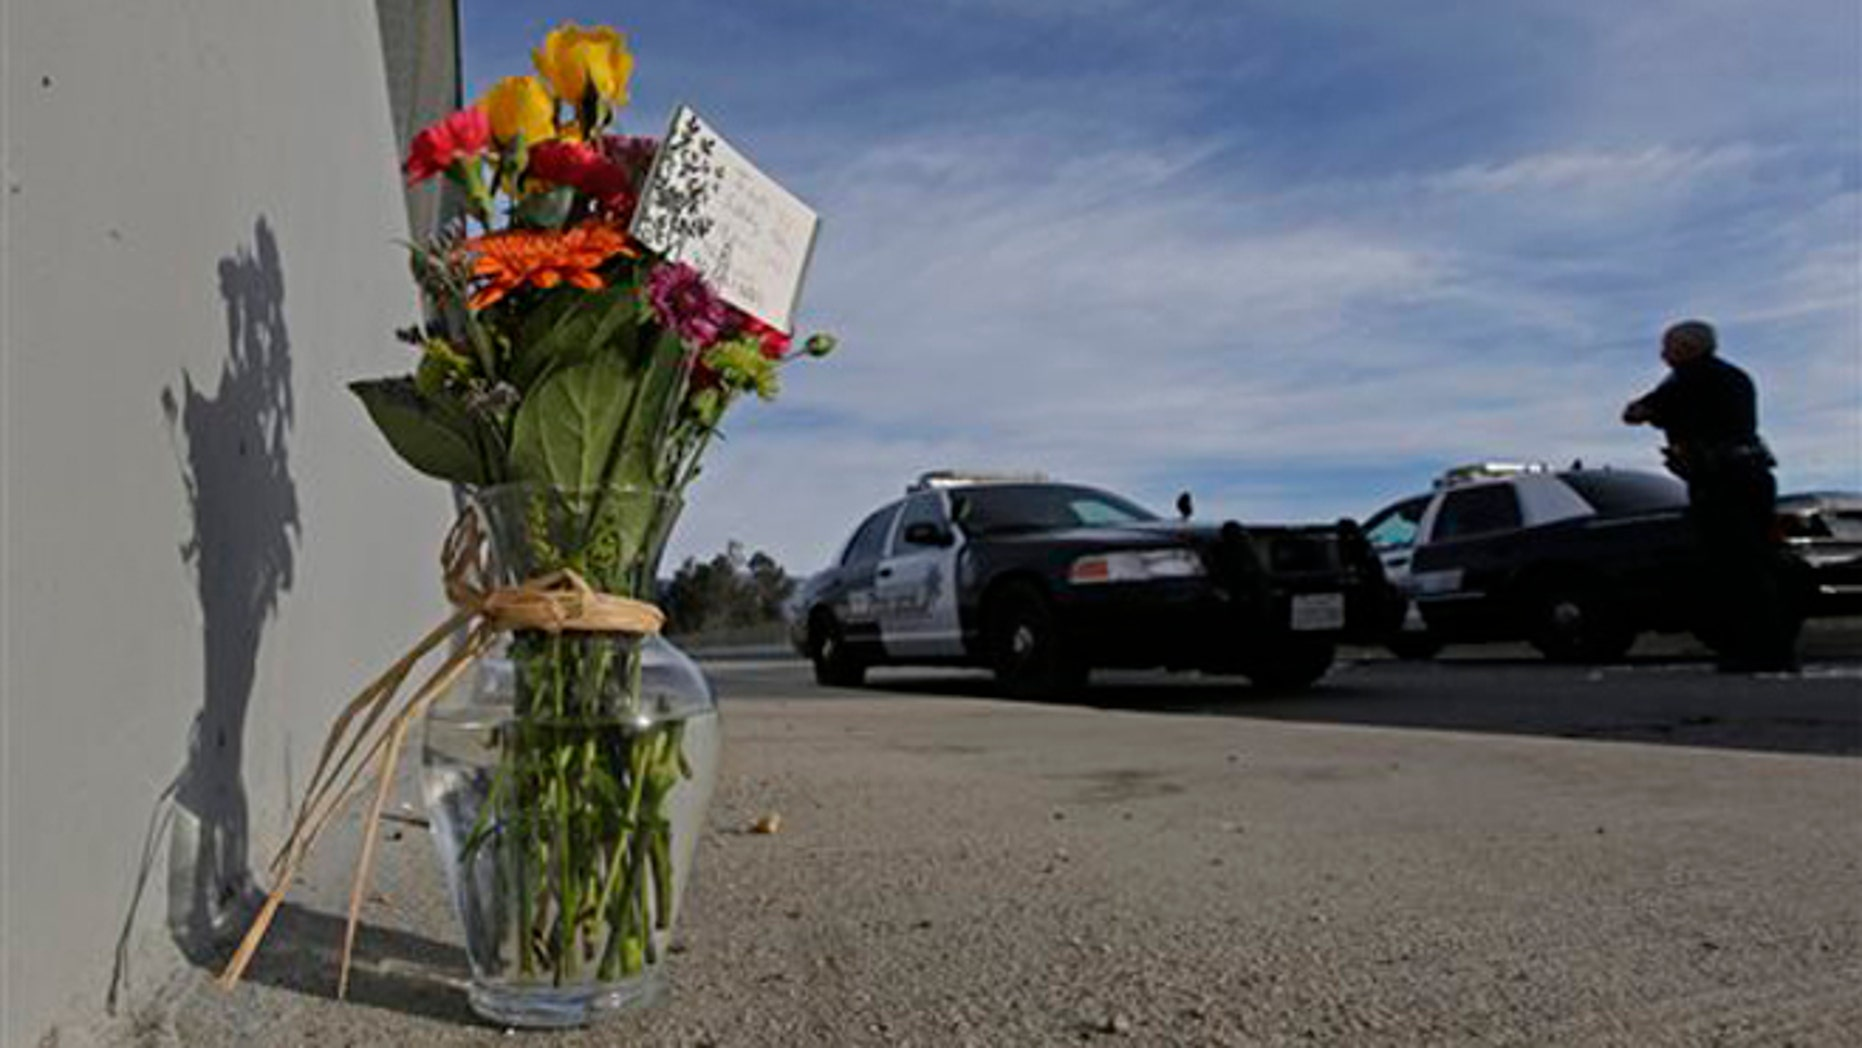 Dec. 3, 2015: Flowers are left by the side of the road as a San Bernardino police officer blocks the road leading to the site of yesterday's mass shooting in San Bernardino, Calif.